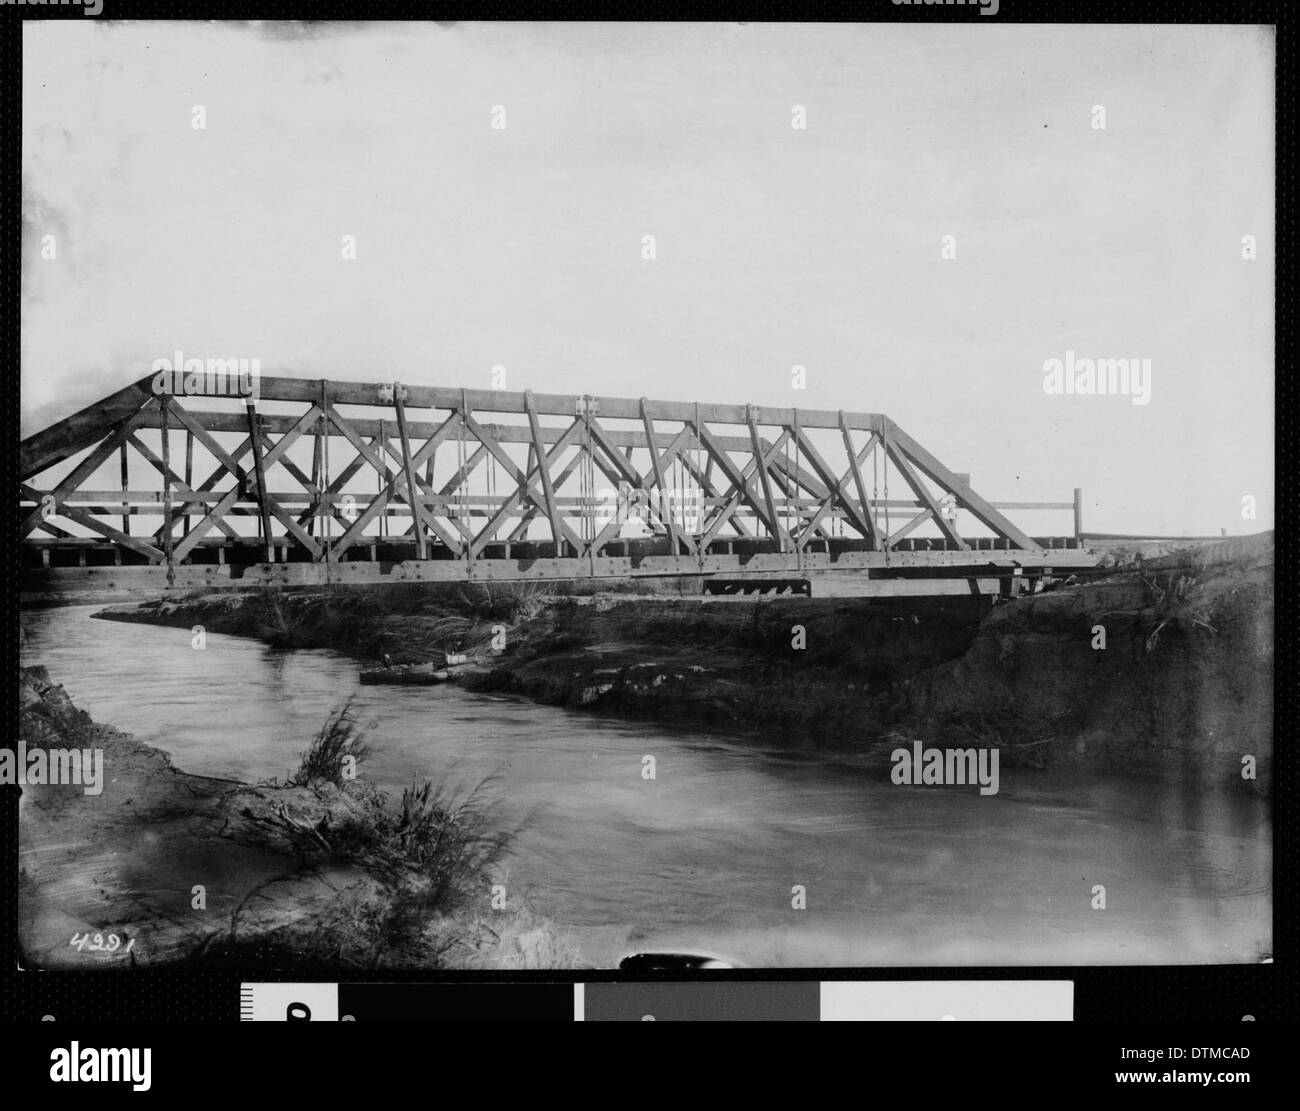 Howe Truss Stock Photos Images Alamy Bridge Diagram Track Pony By Wood Across The Alamo River Below Holtville Imperial County California